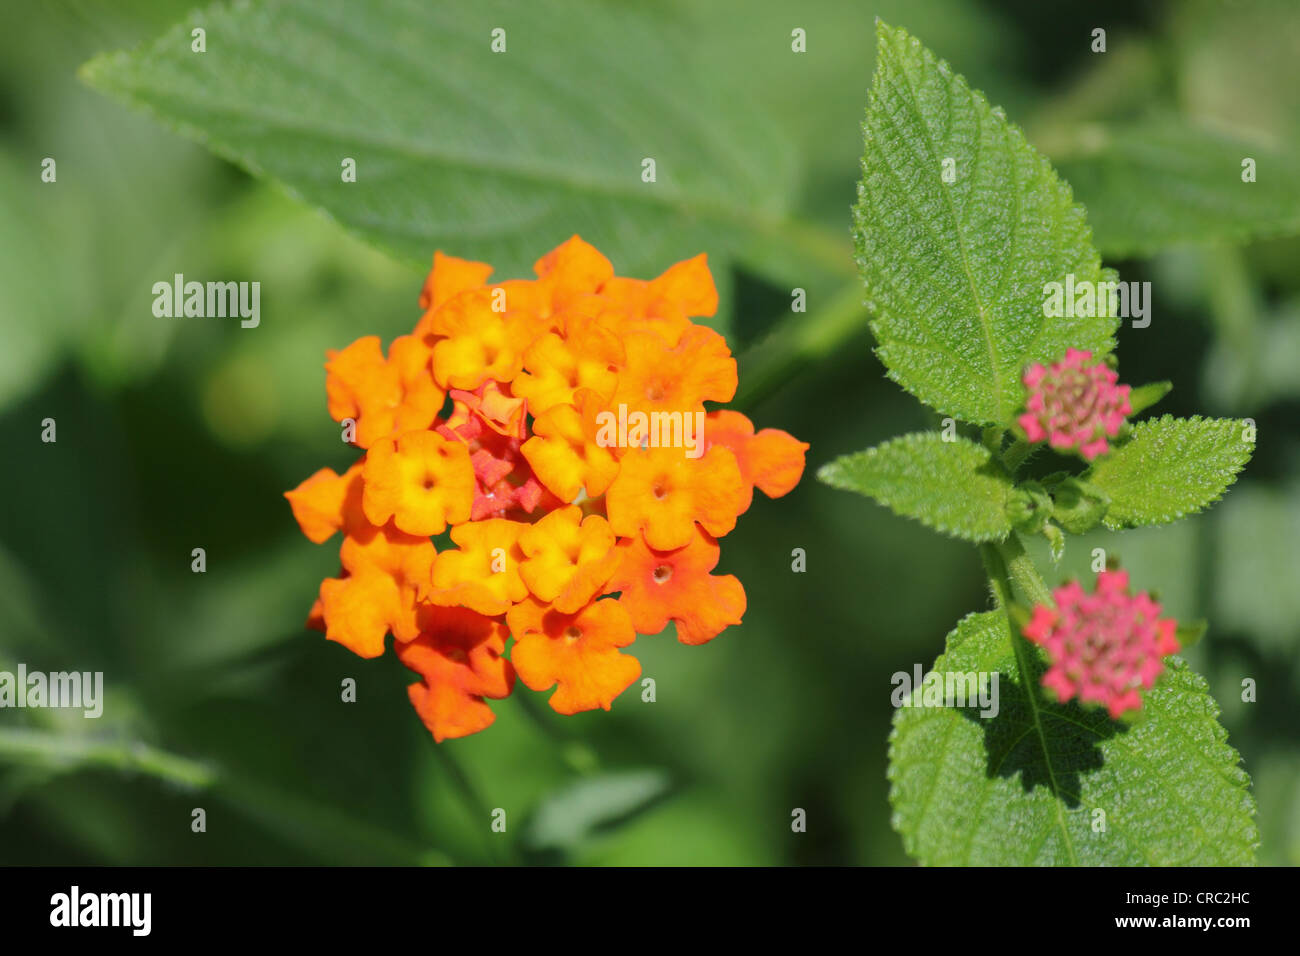 Lantana Camara also known as Spanish Flag or West Indian Lantana - Stock Image